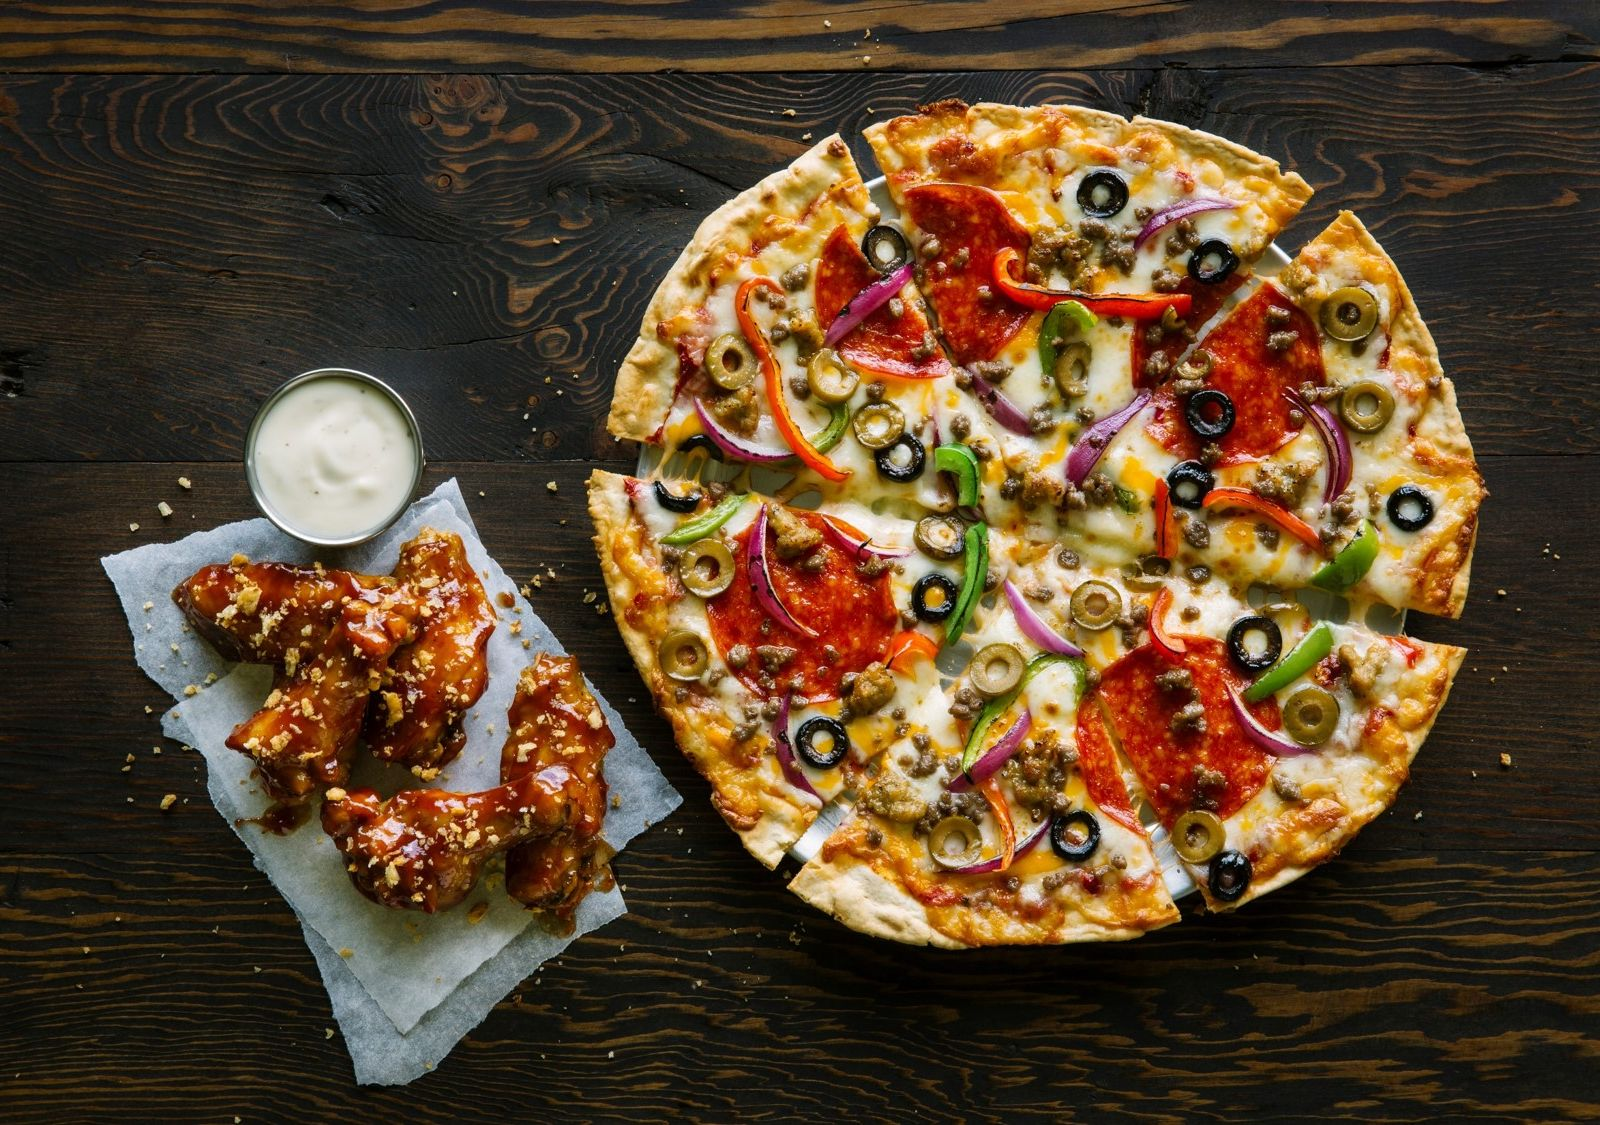 Pie Five Pizza's New Website Will Make You Drool